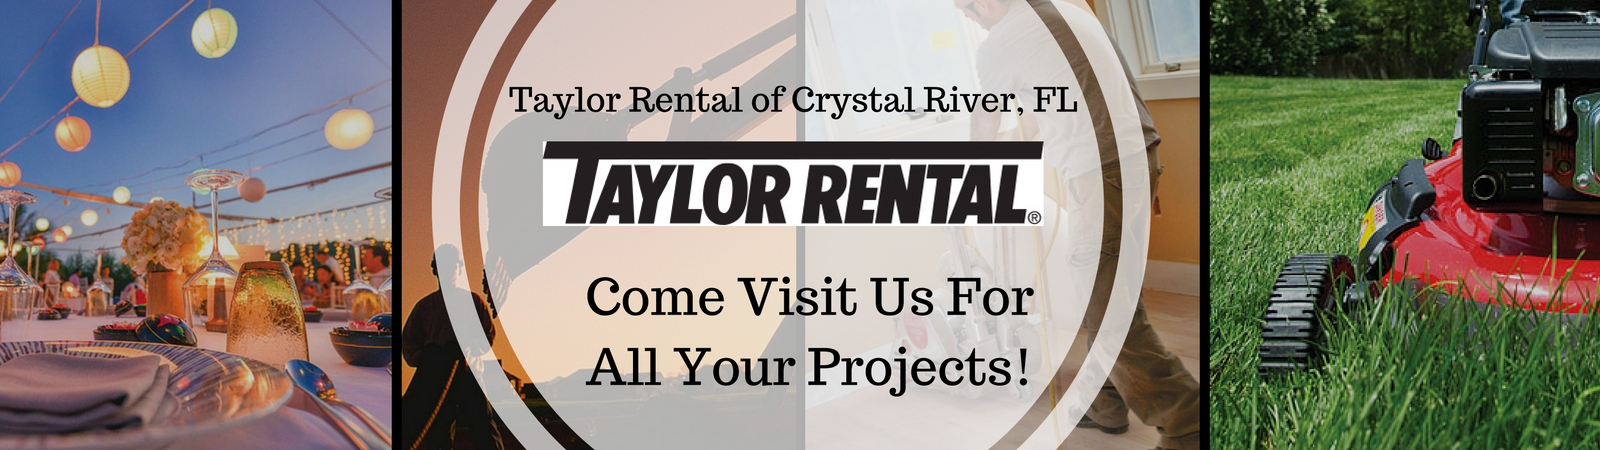 taylor rental of crystal river